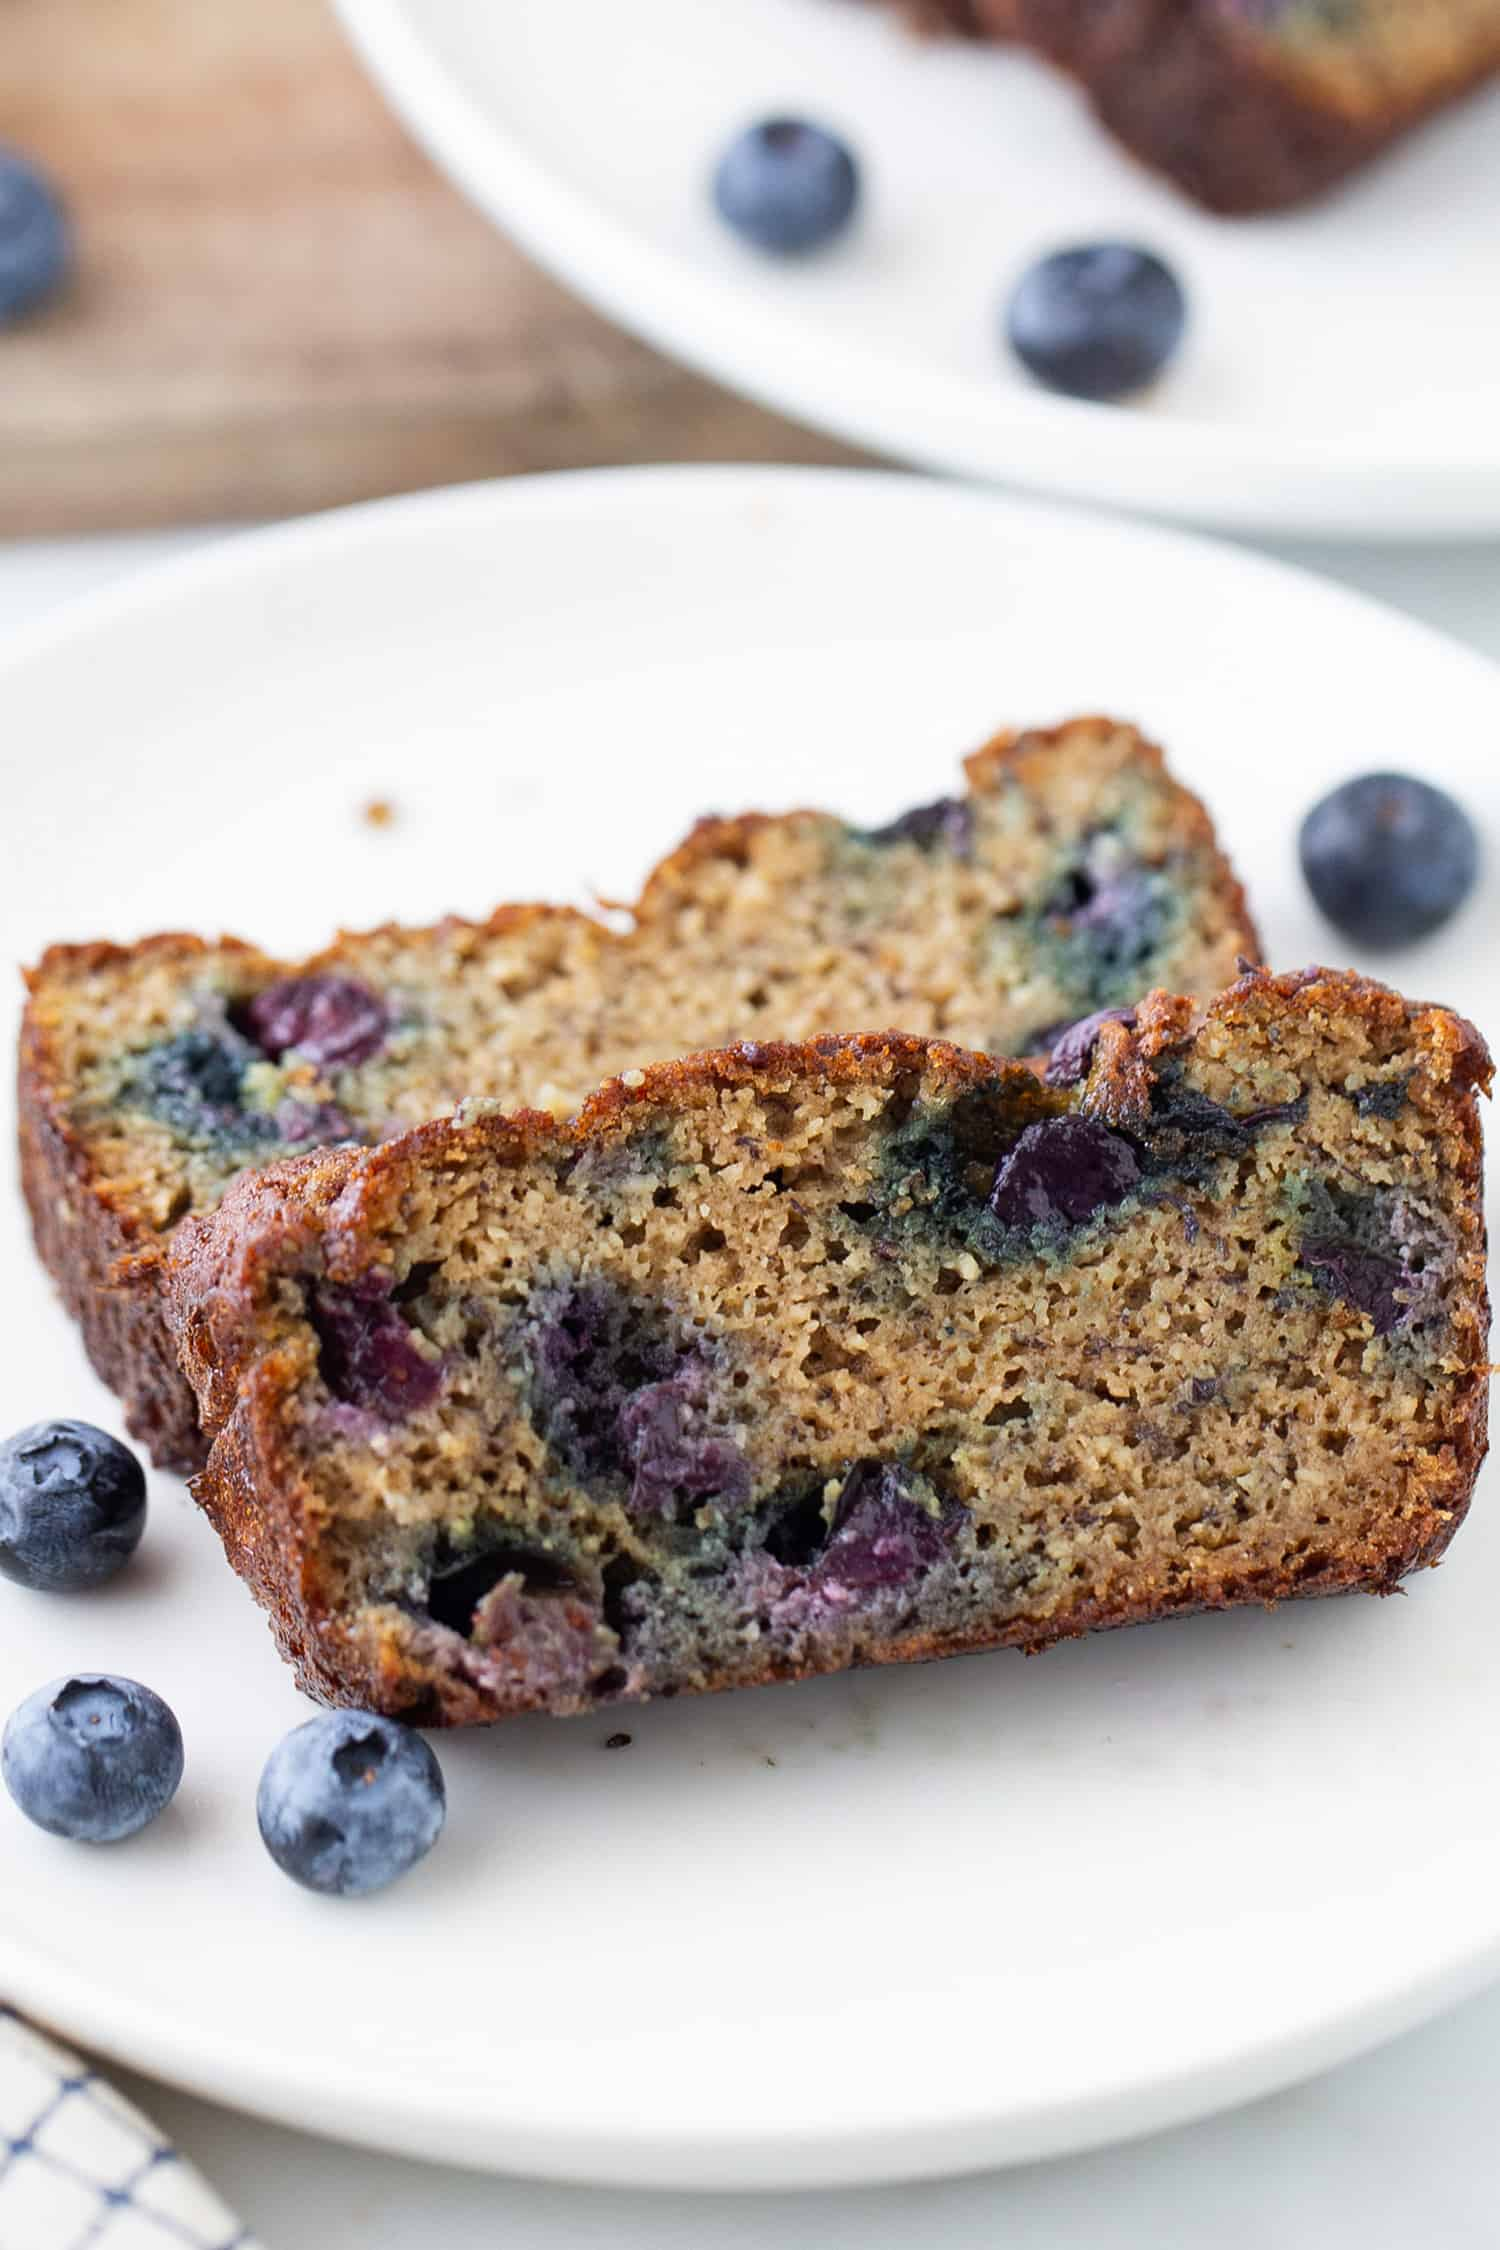 Top close-up view of two slices of blueberry banana bread on a white plate